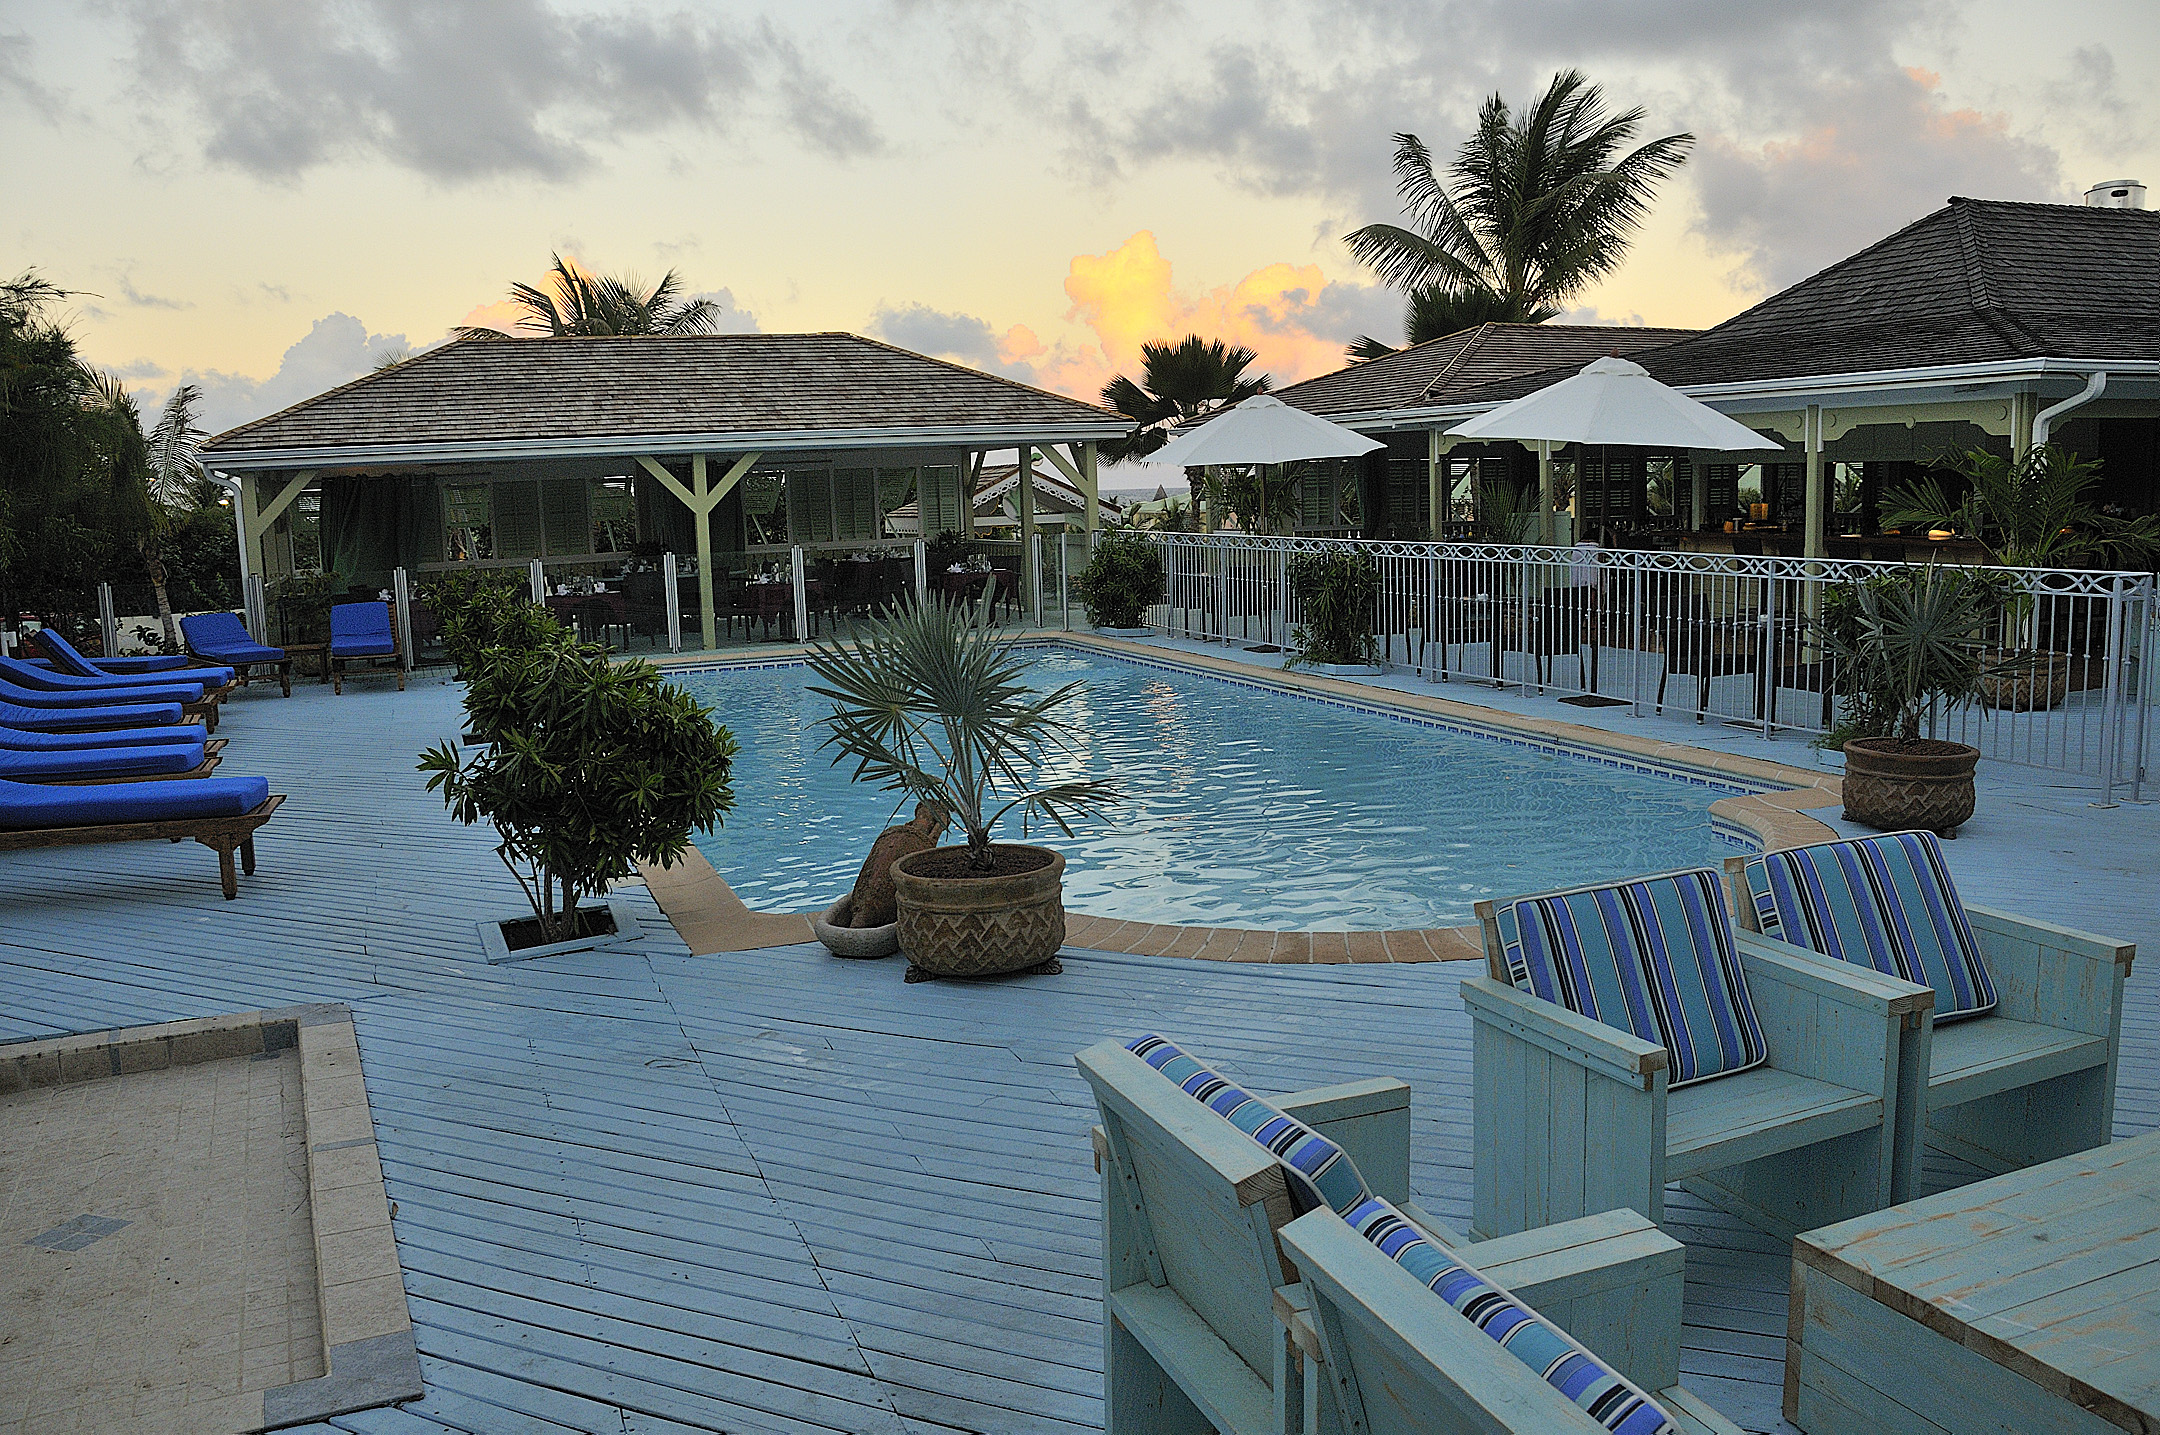 We won a free flight to St Martin, where we stayed at La Plantation- on our own nickel!